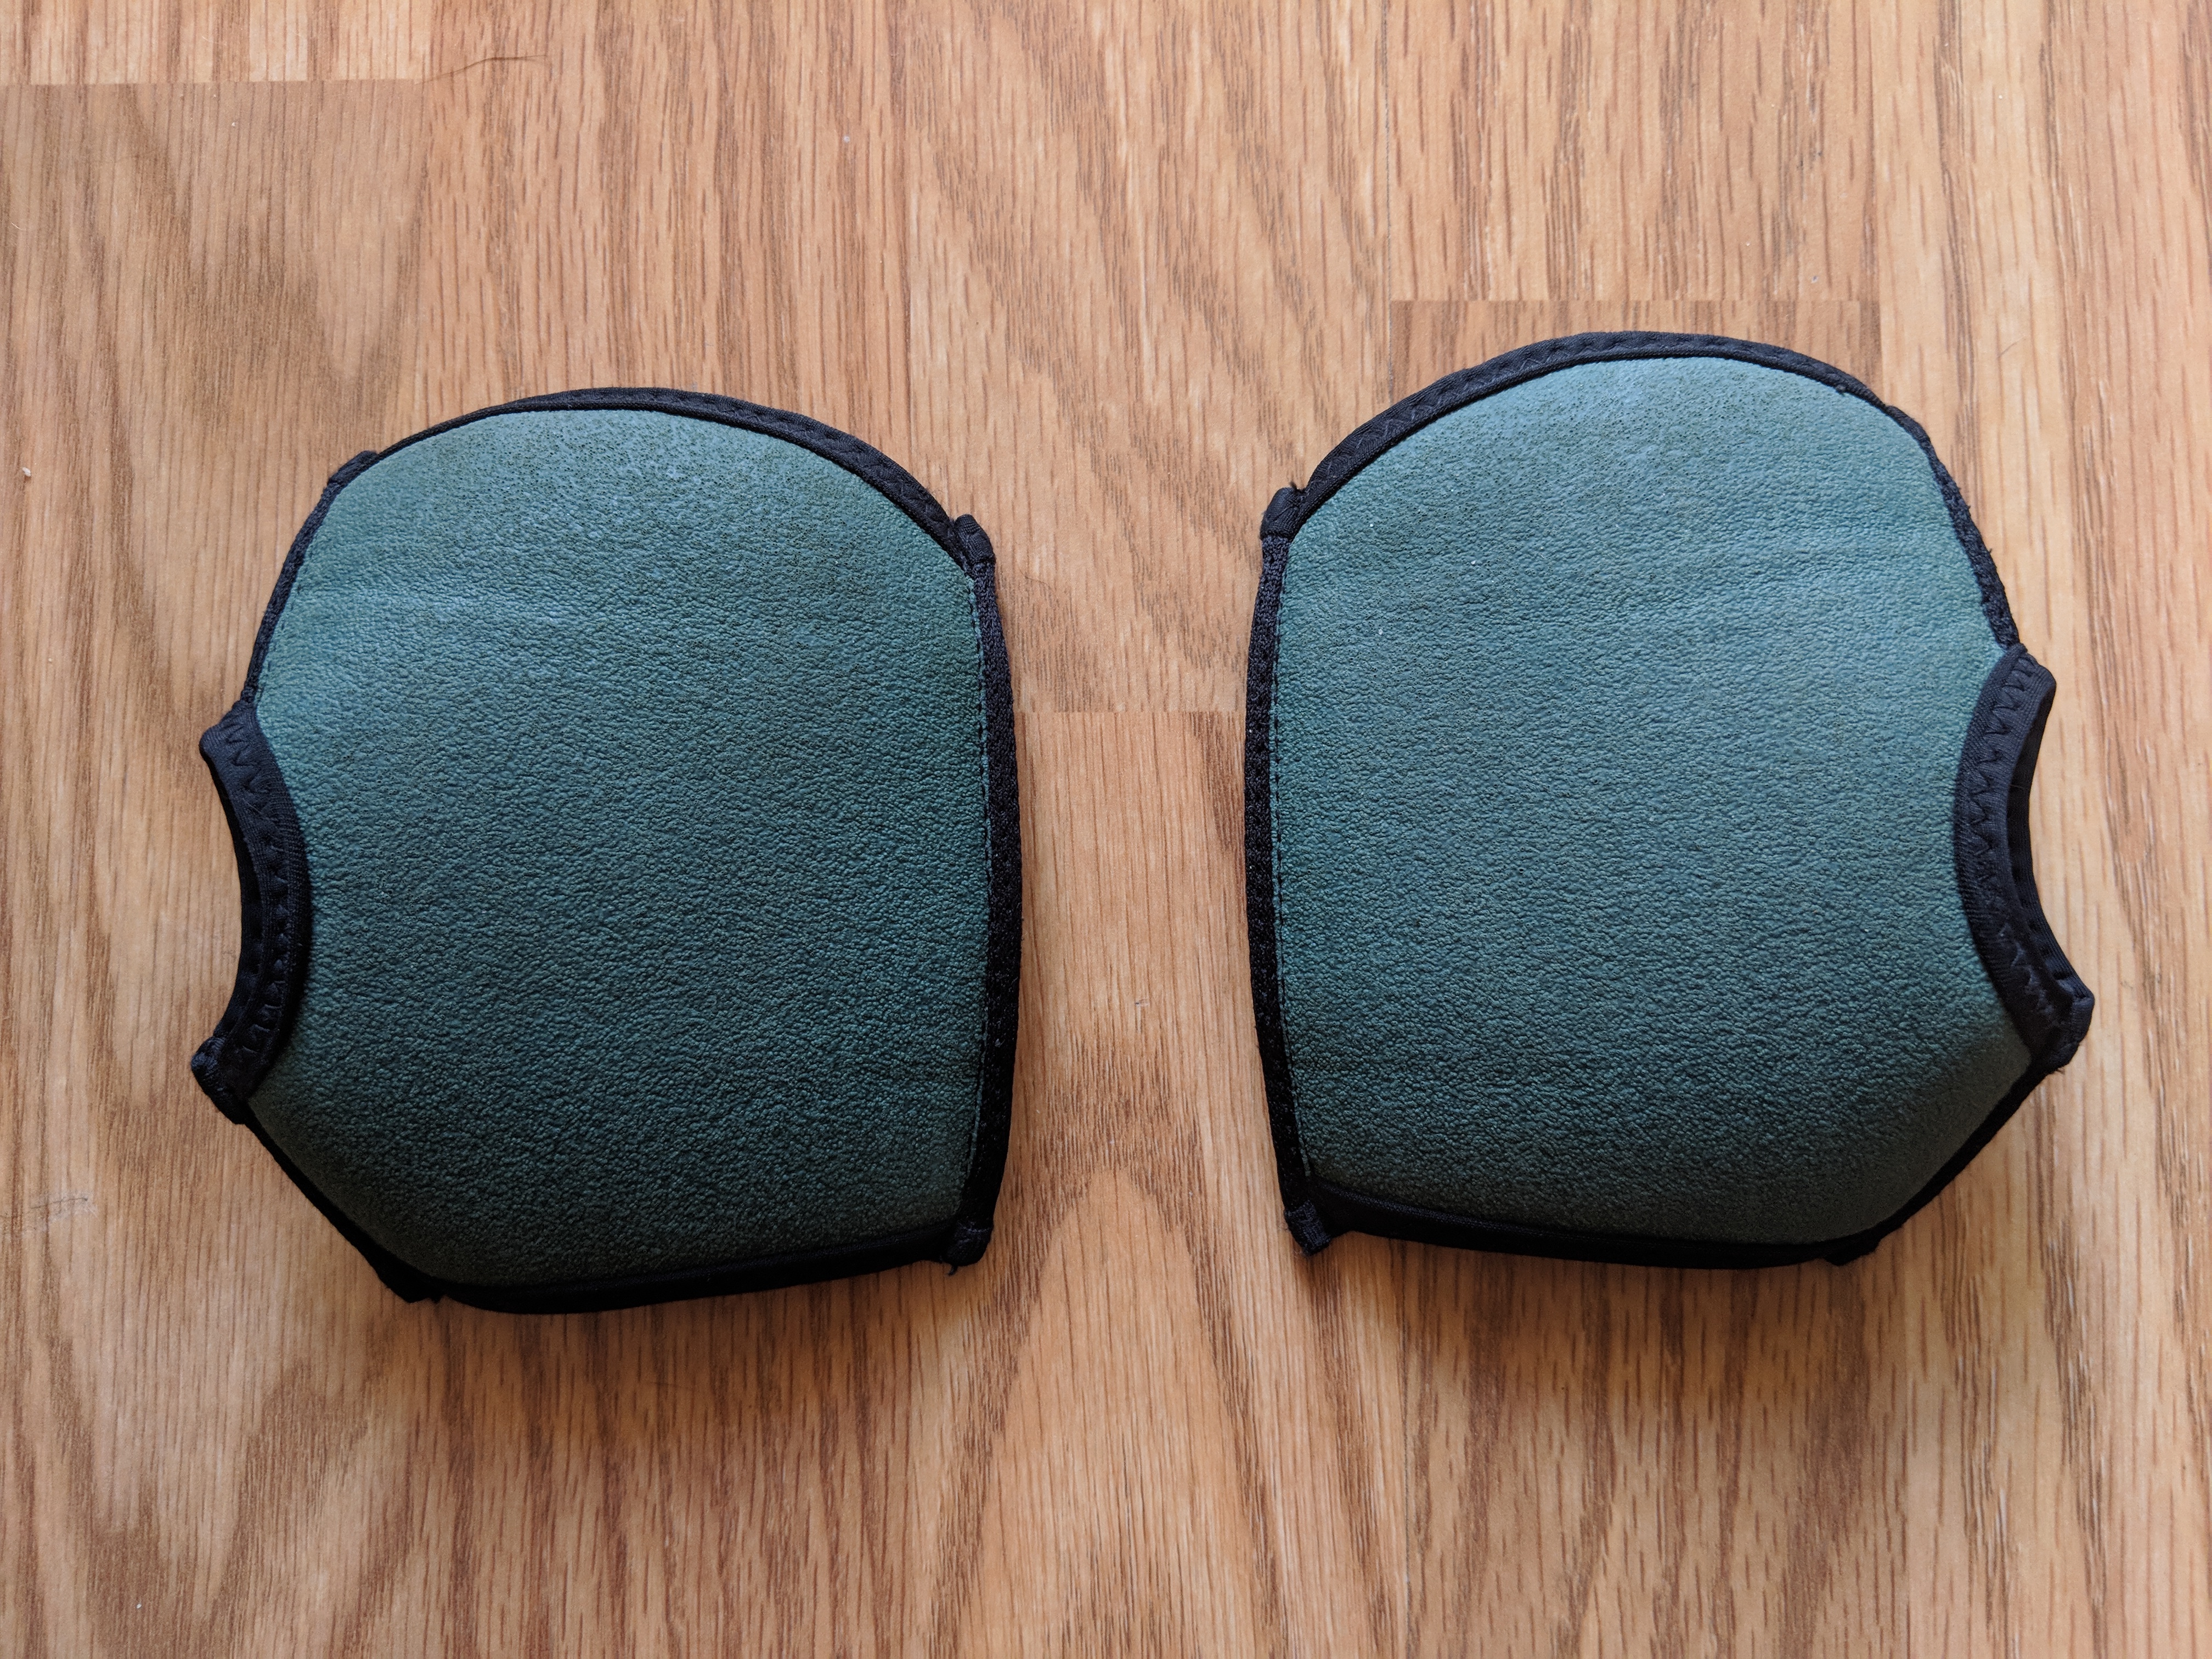 Yoga Paws Review - Wearable Hand Pads (bottom)